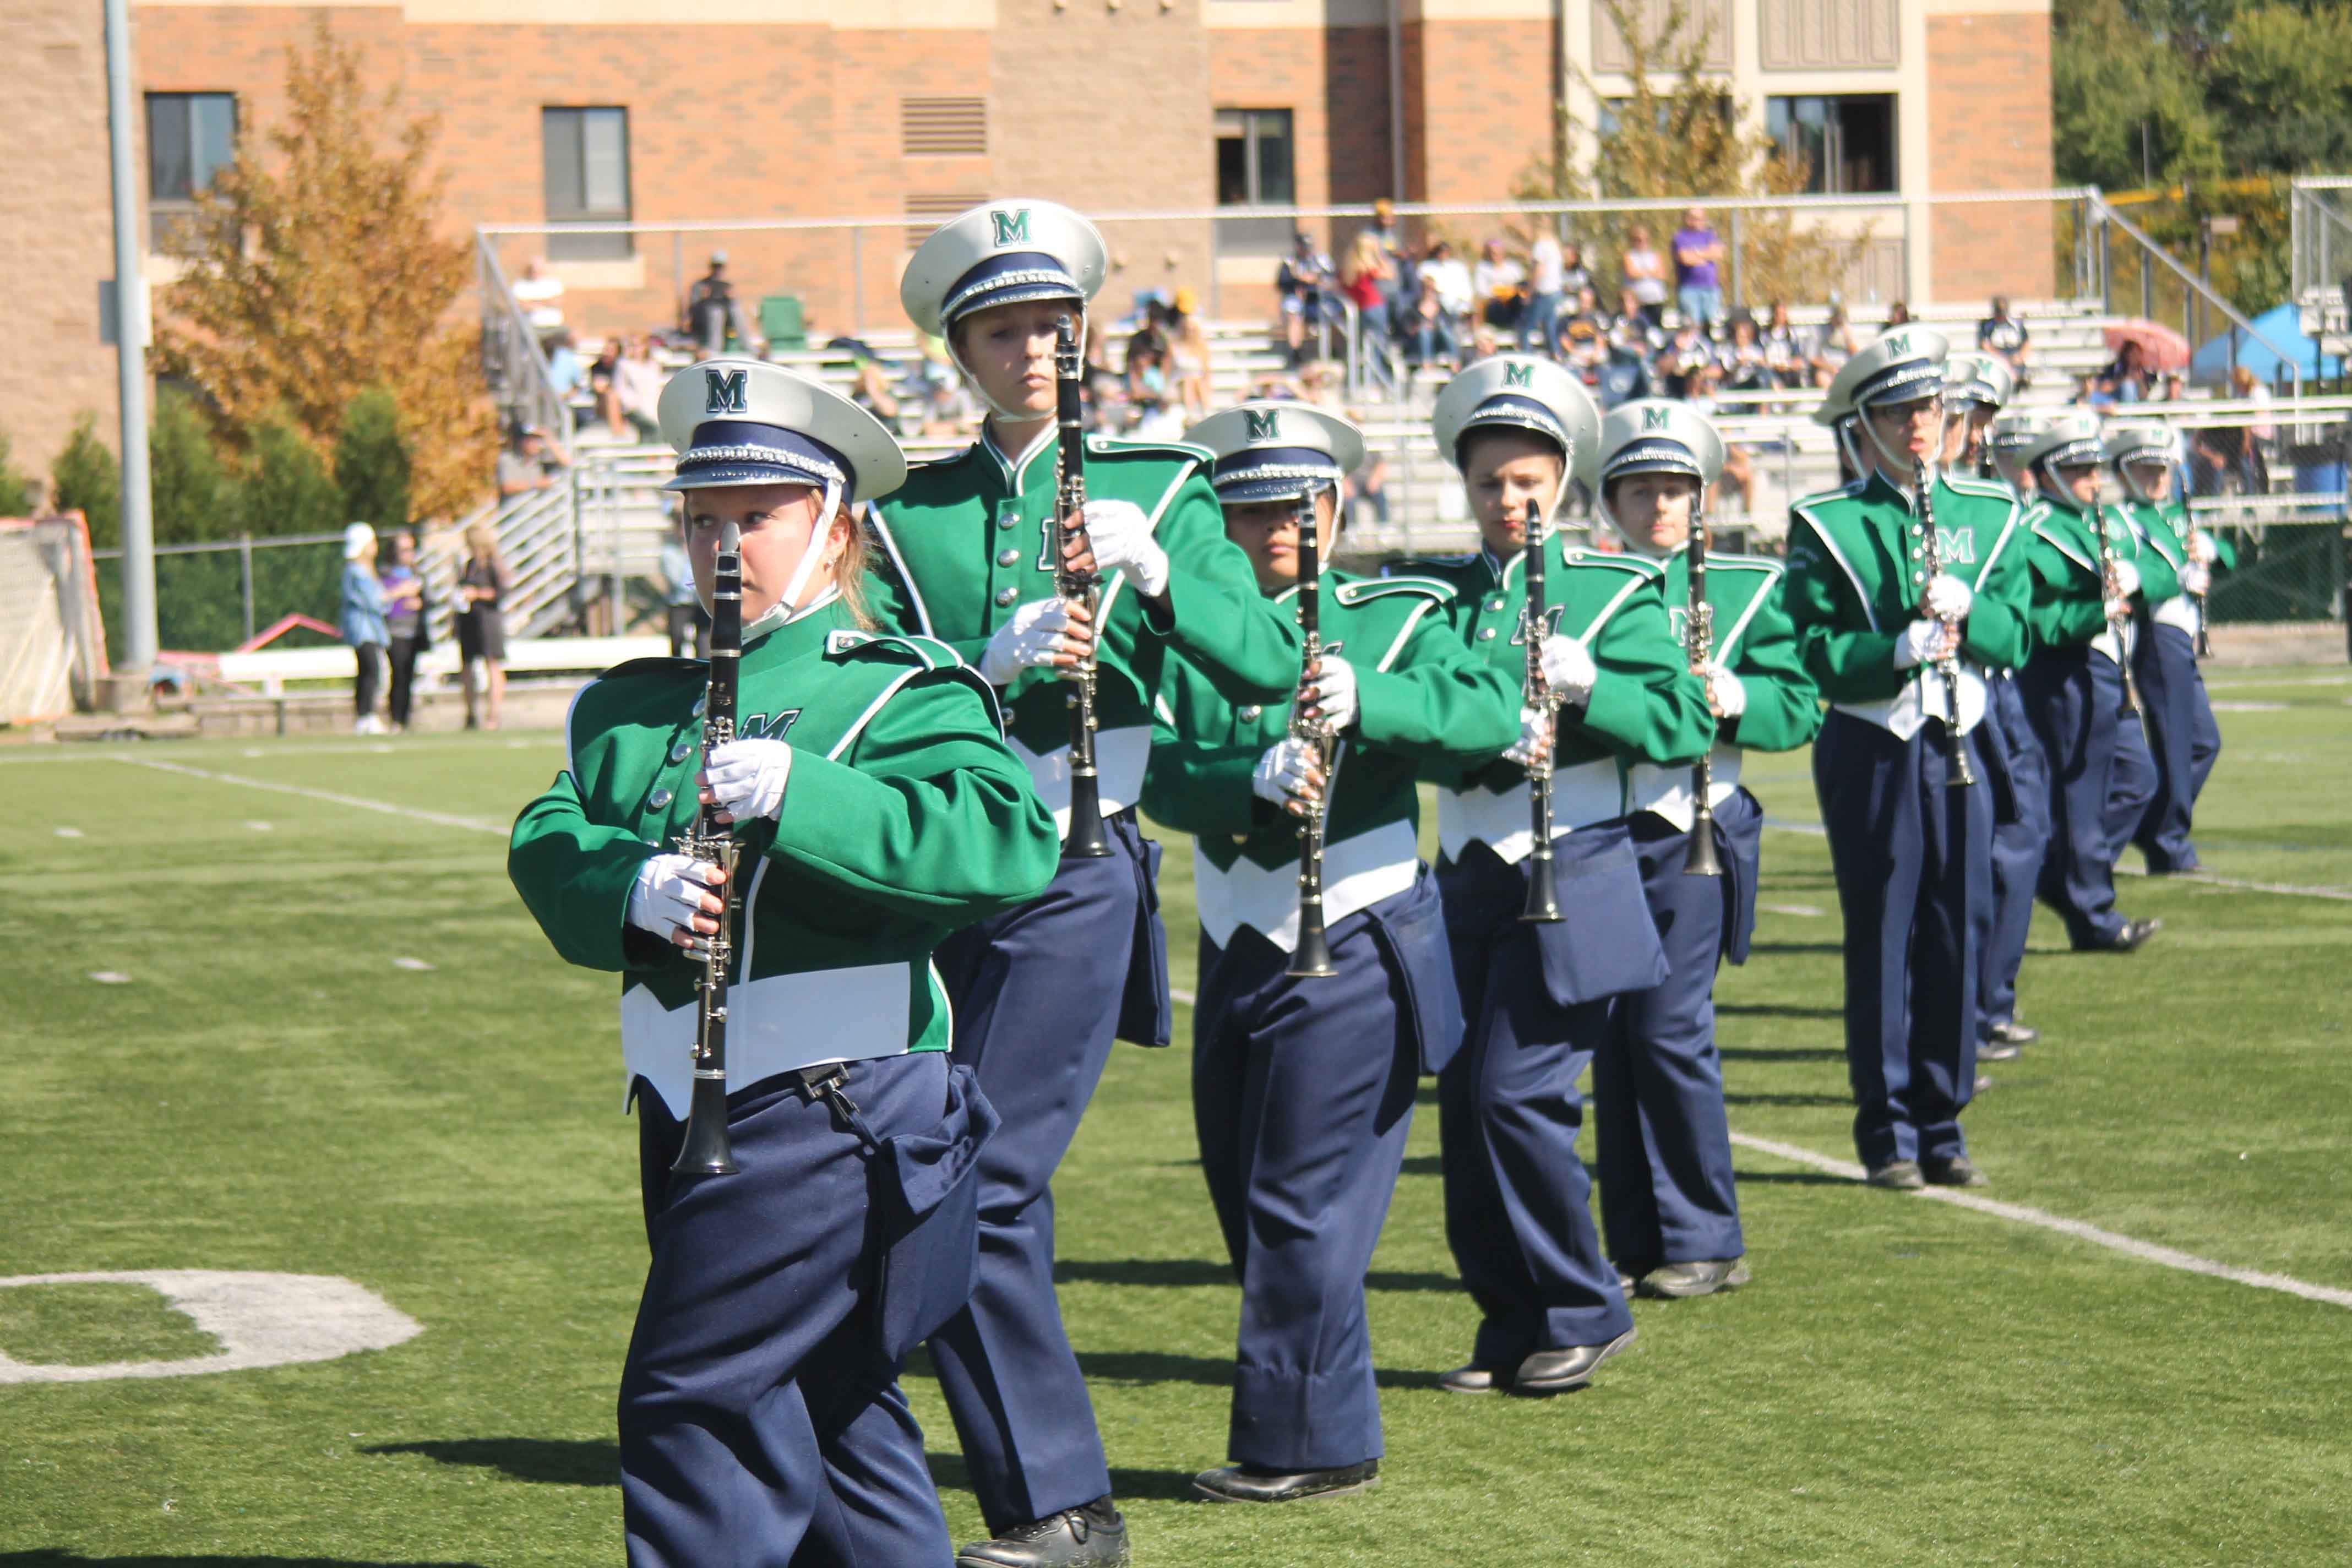 The Mercyhurst University Marching Band boosted Laker spirit while performing during the Homecoming football game on Sept. 24.